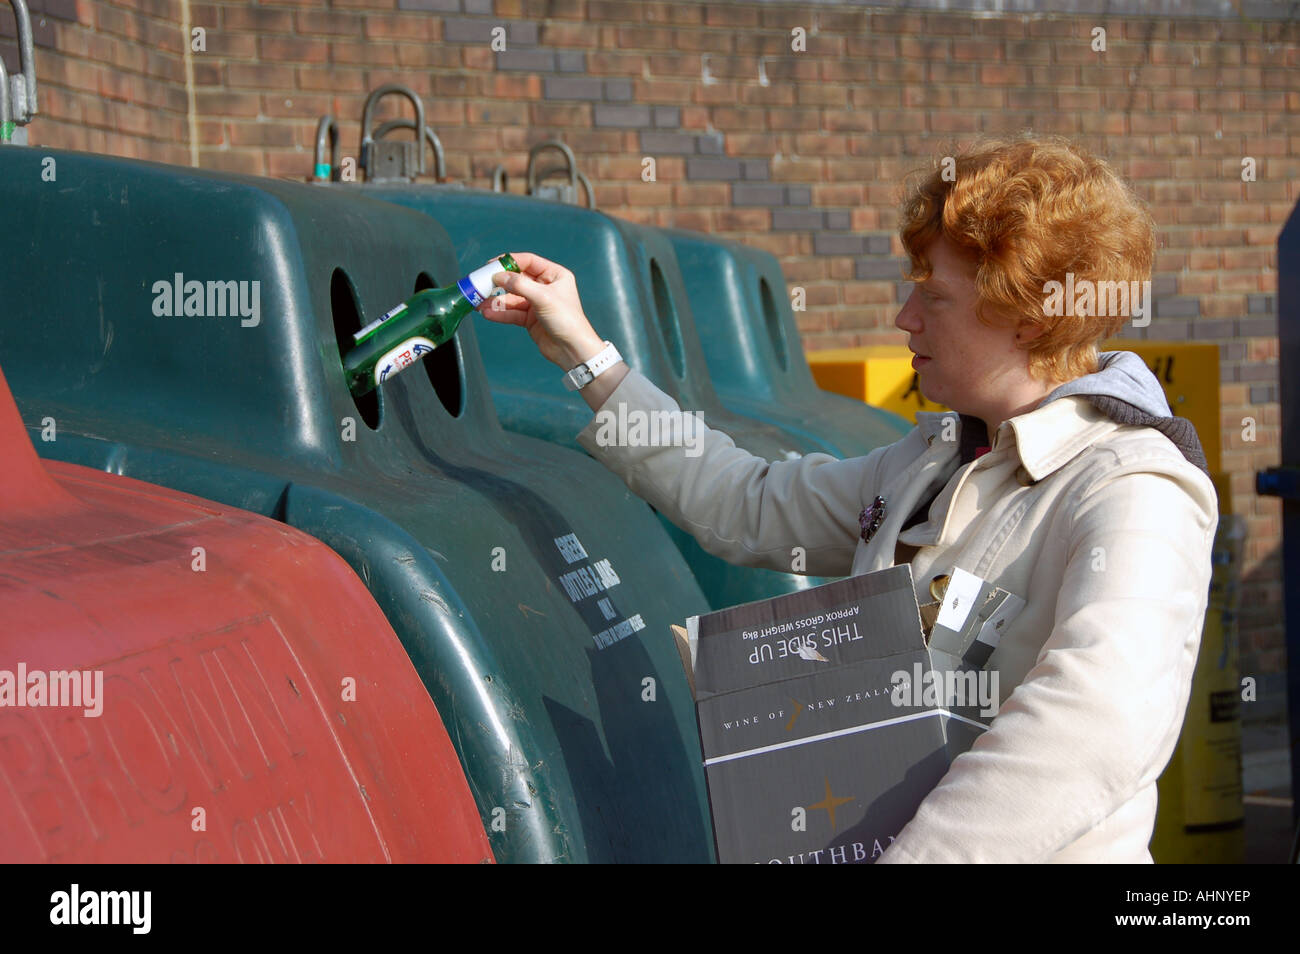 A woman recycling bottles at a bottle bank - Stock Image